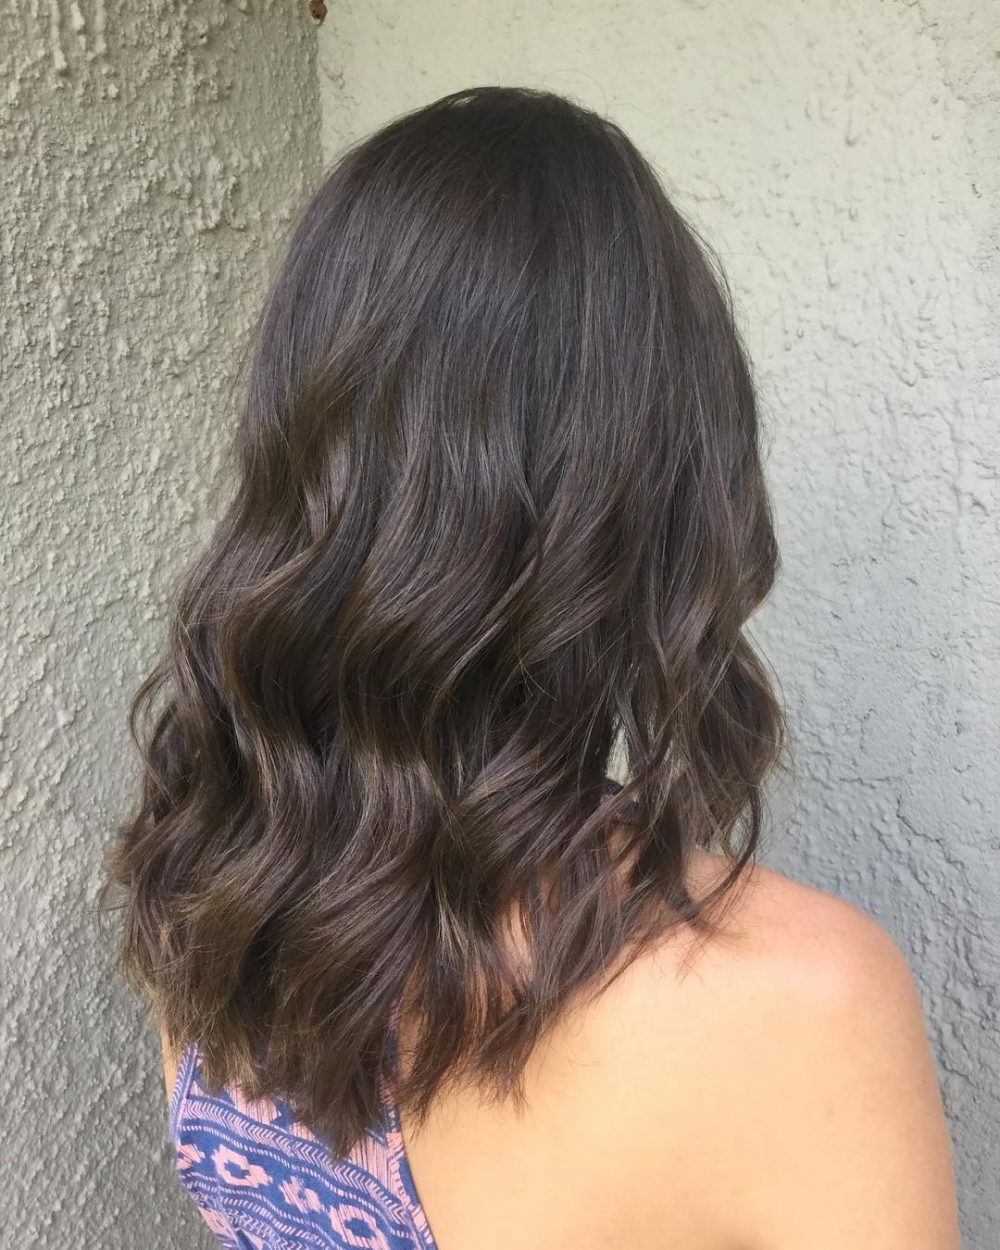 37 Chic Medium Length Wavy Hairstyles In 2019 Intended For Most Up To Date Medium Layered Wavy Haircuts (View 14 of 20)